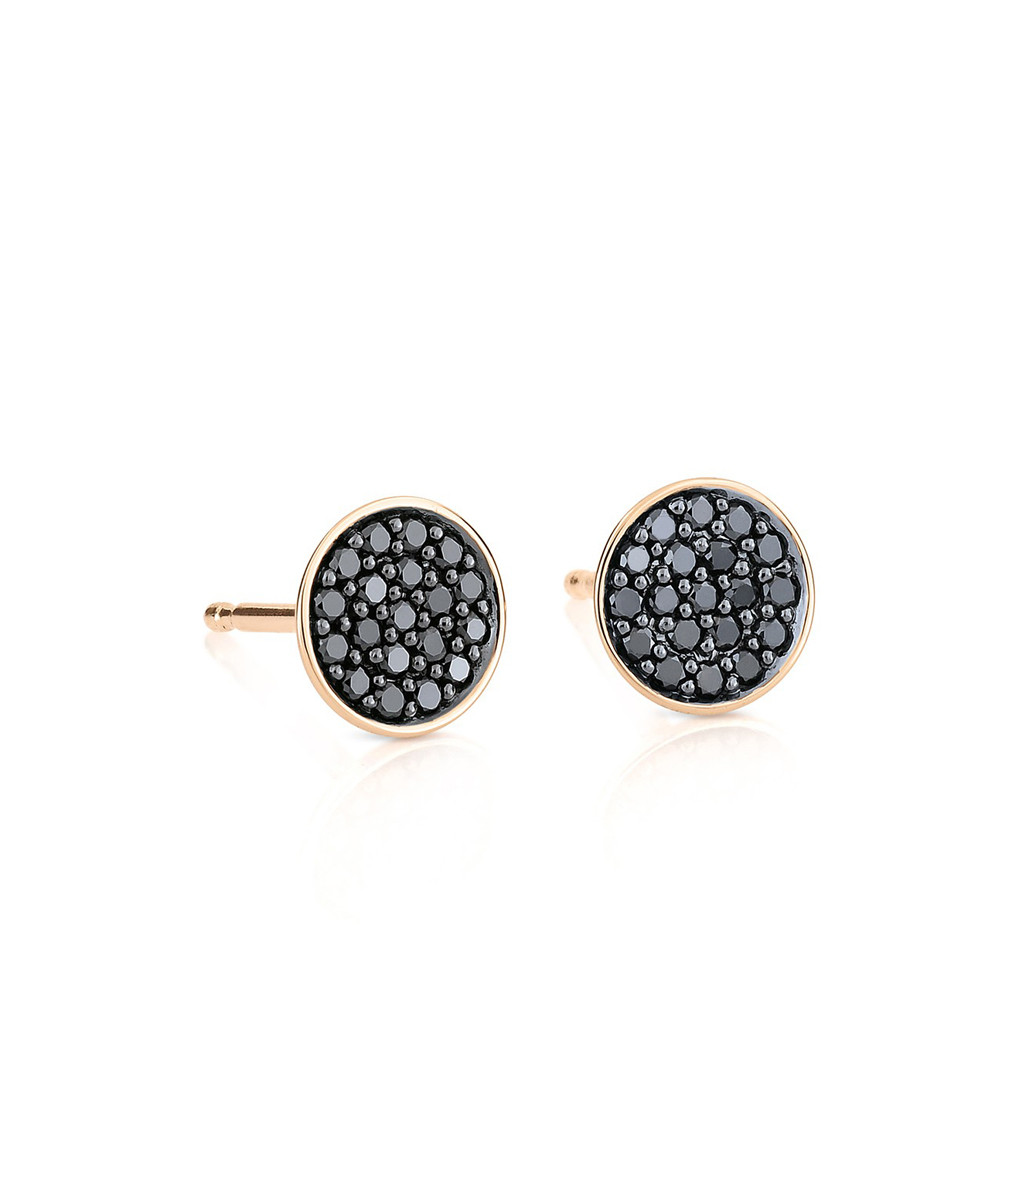 GINETTE_NY - Boucles d'oreilles Black Diamonds Icons Diamants Or Rose